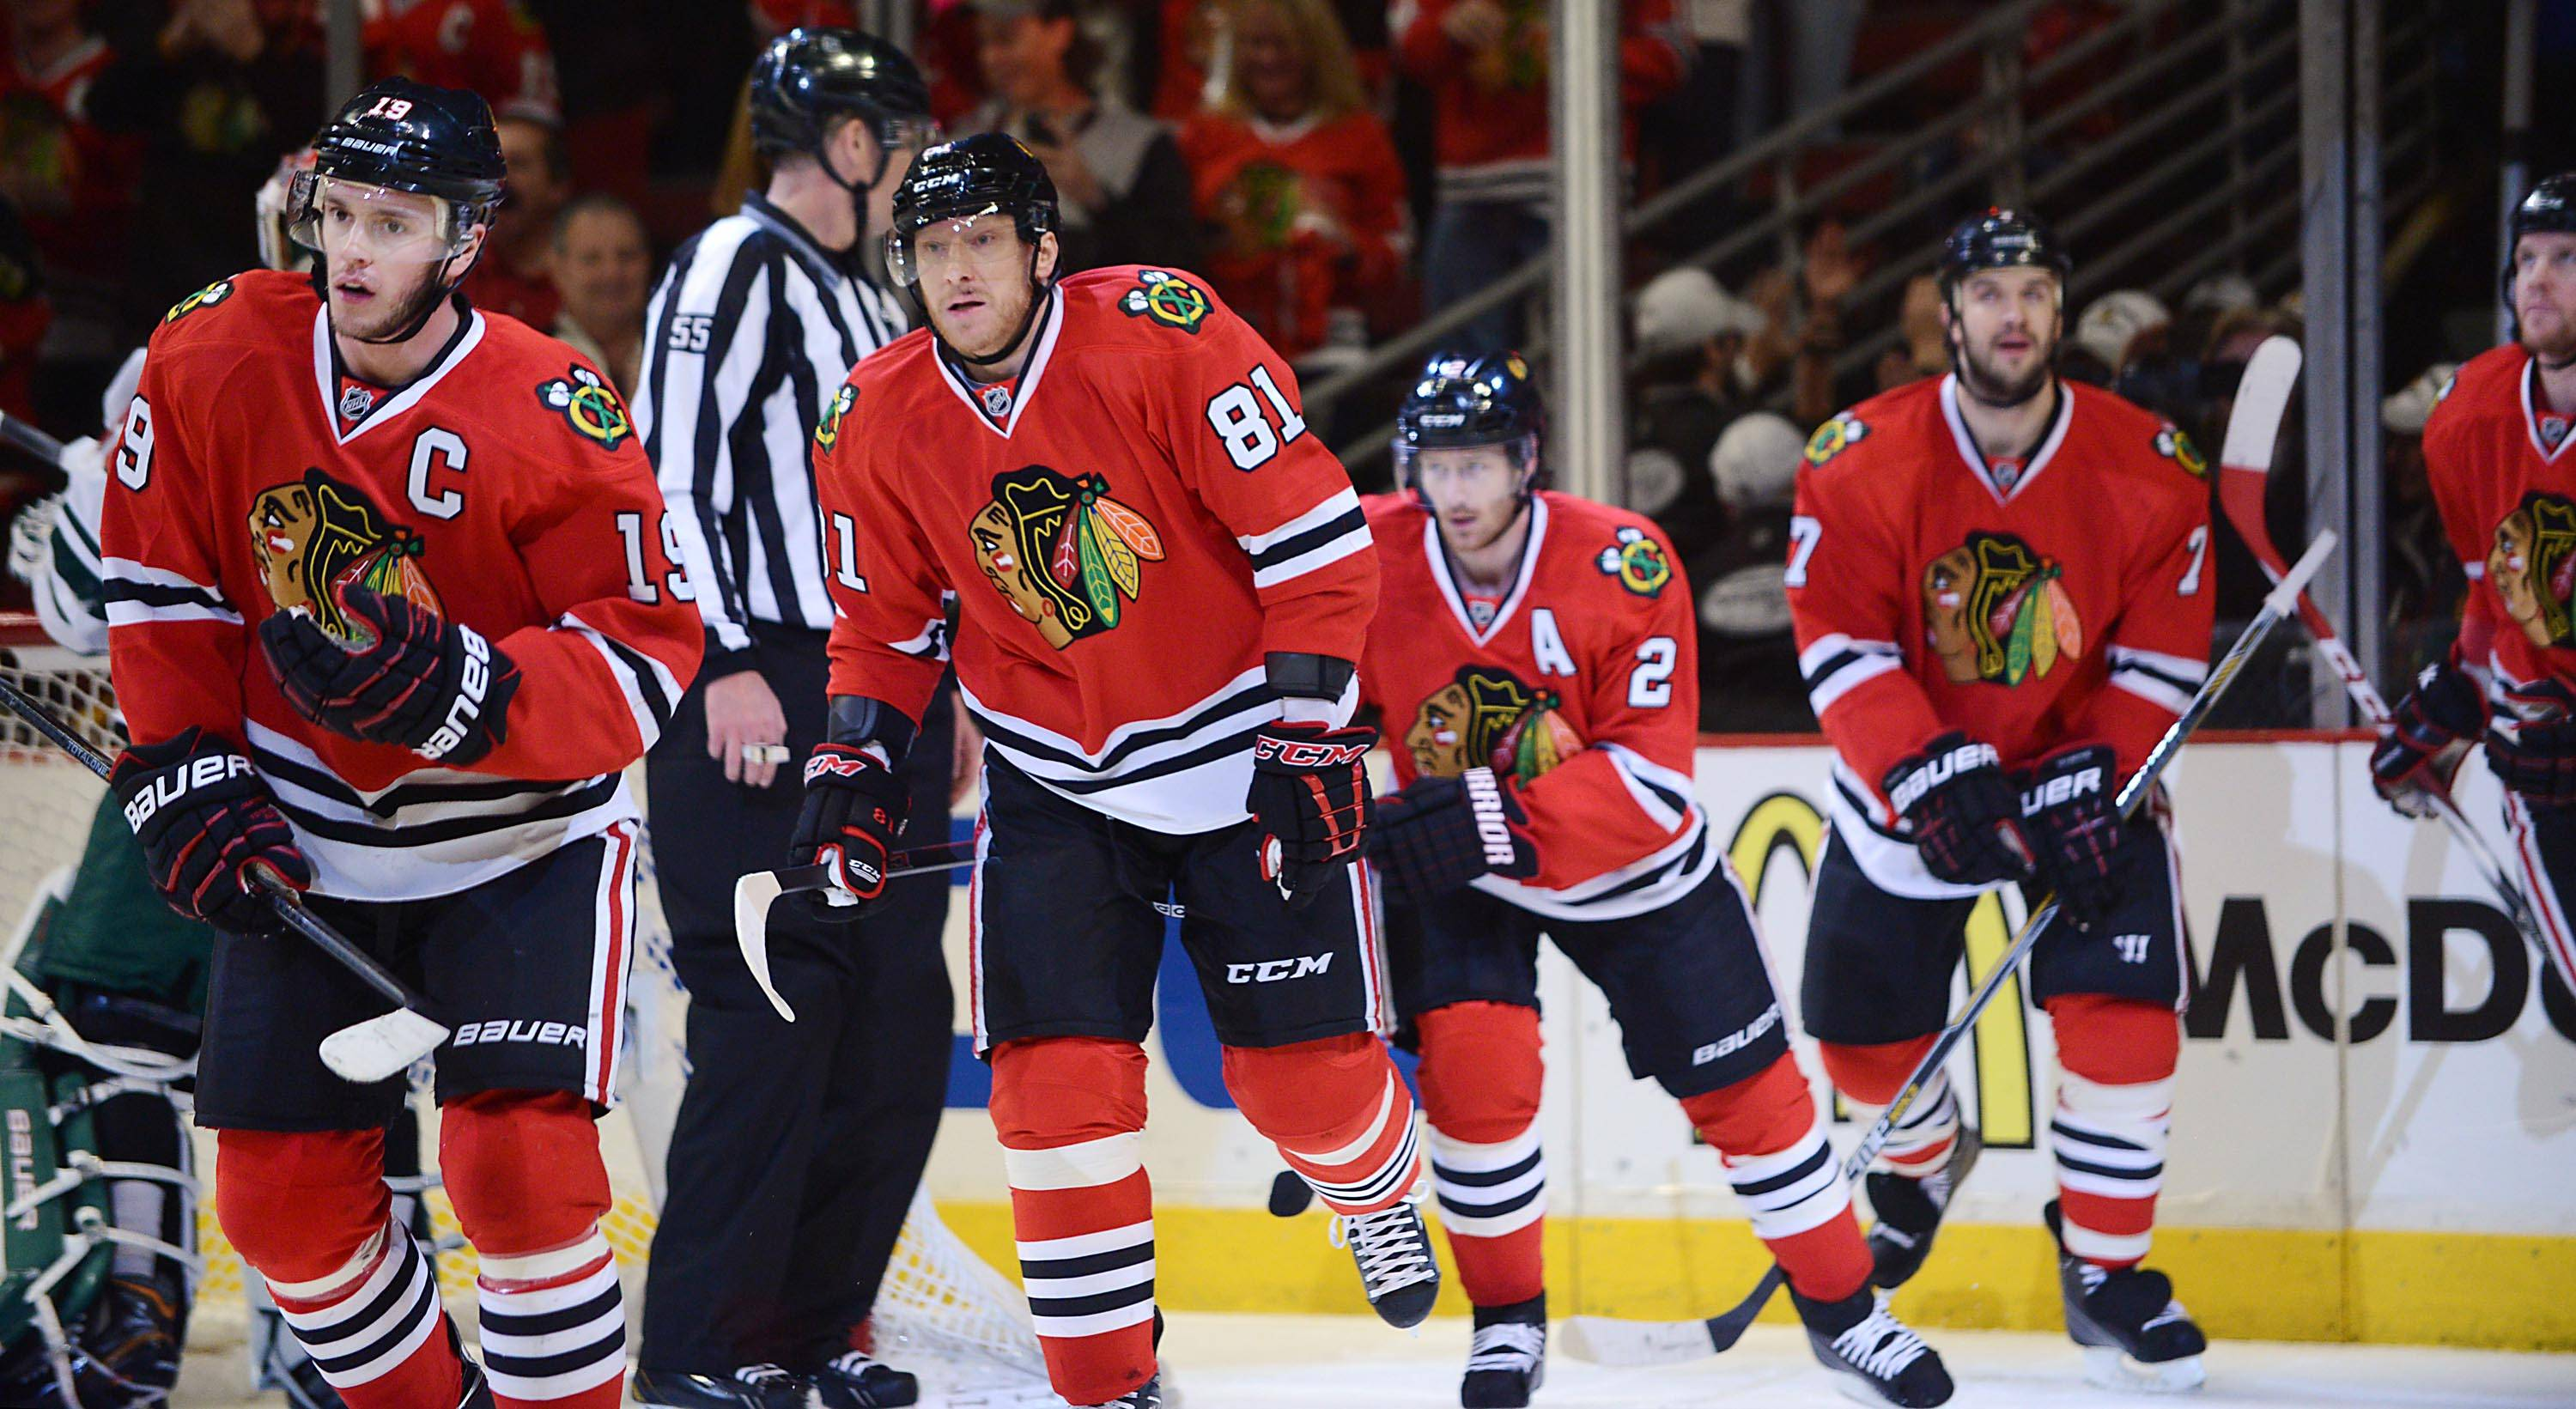 Chicago Blackhawks center Jonathan Toews leads his line off the ice after scoring in the first period.